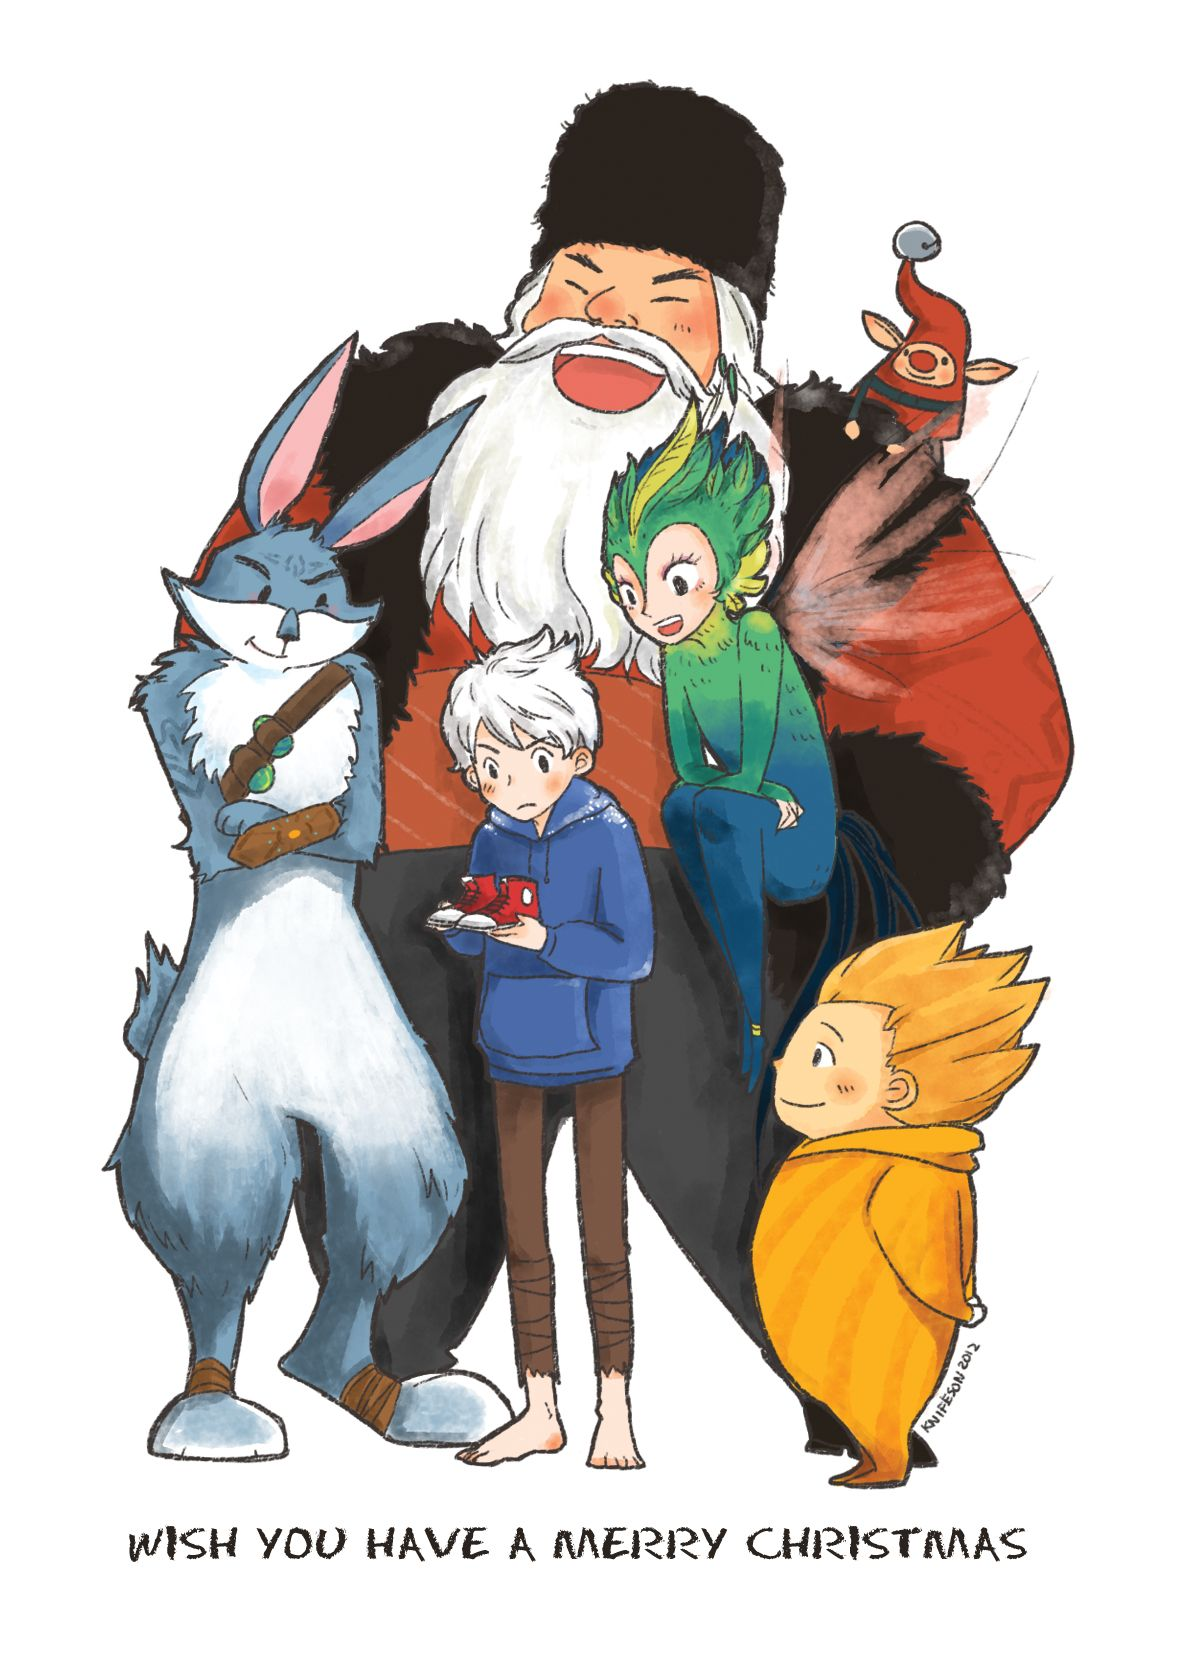 Merry Christmas Rise Of The Guardians Anime Animated Cartoons